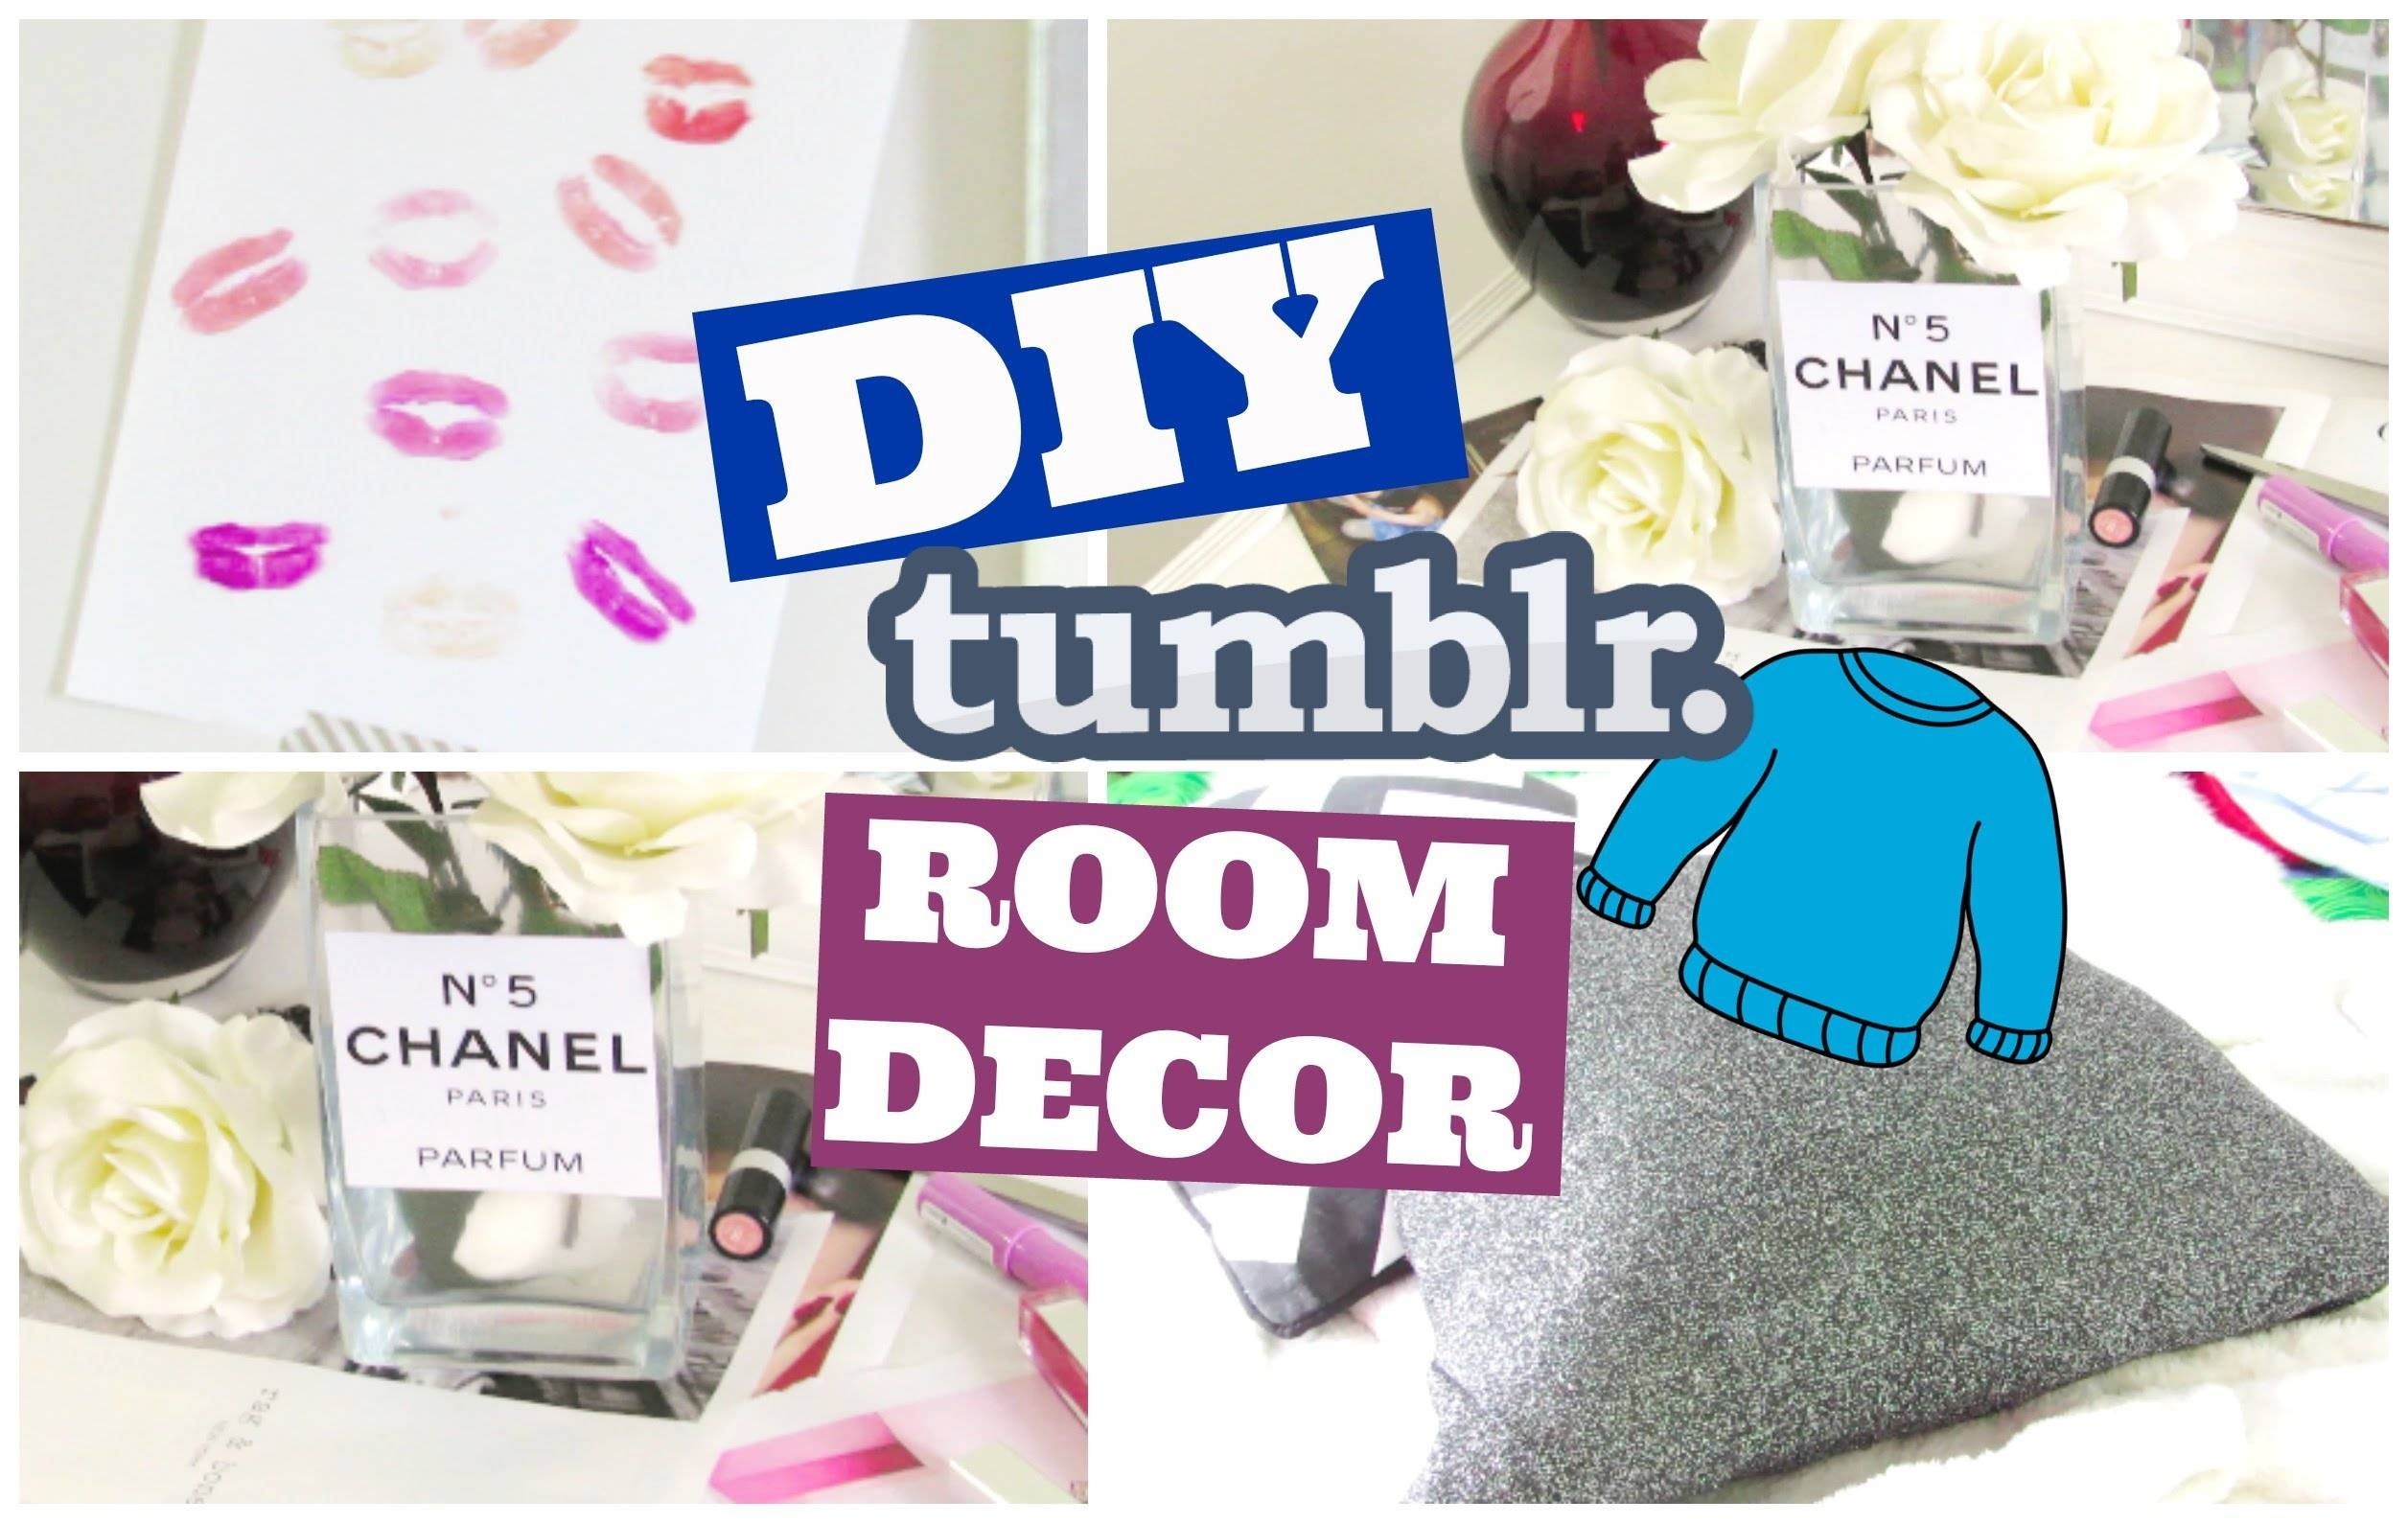 Diy Tumblr Room Decor For Teens – Chanel Vase, Accent Pillows And Throughout Recent Wall Art For Teens (View 6 of 20)